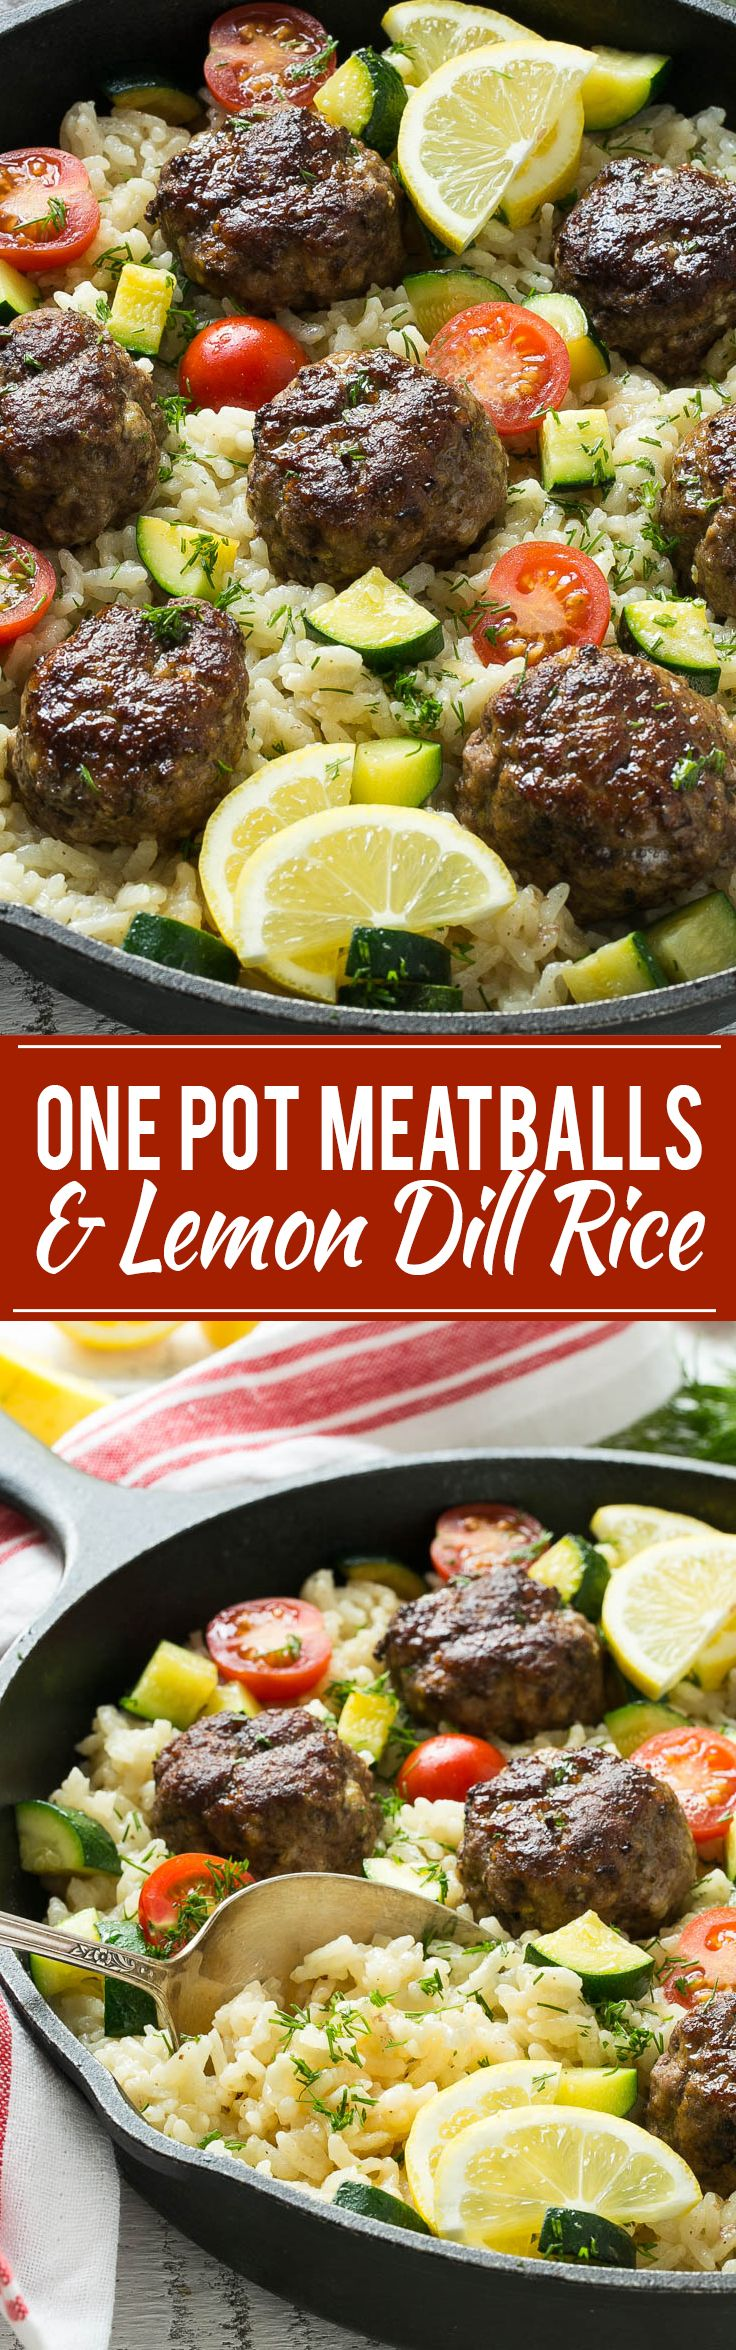 This recipe for one pot greek meatballs with lemon dill rice includes savory greek spiced beef meatballs, creamy arborio rice and vegetables, all cooked together in a single pot! #VillageHarvestInspired @villageharvest